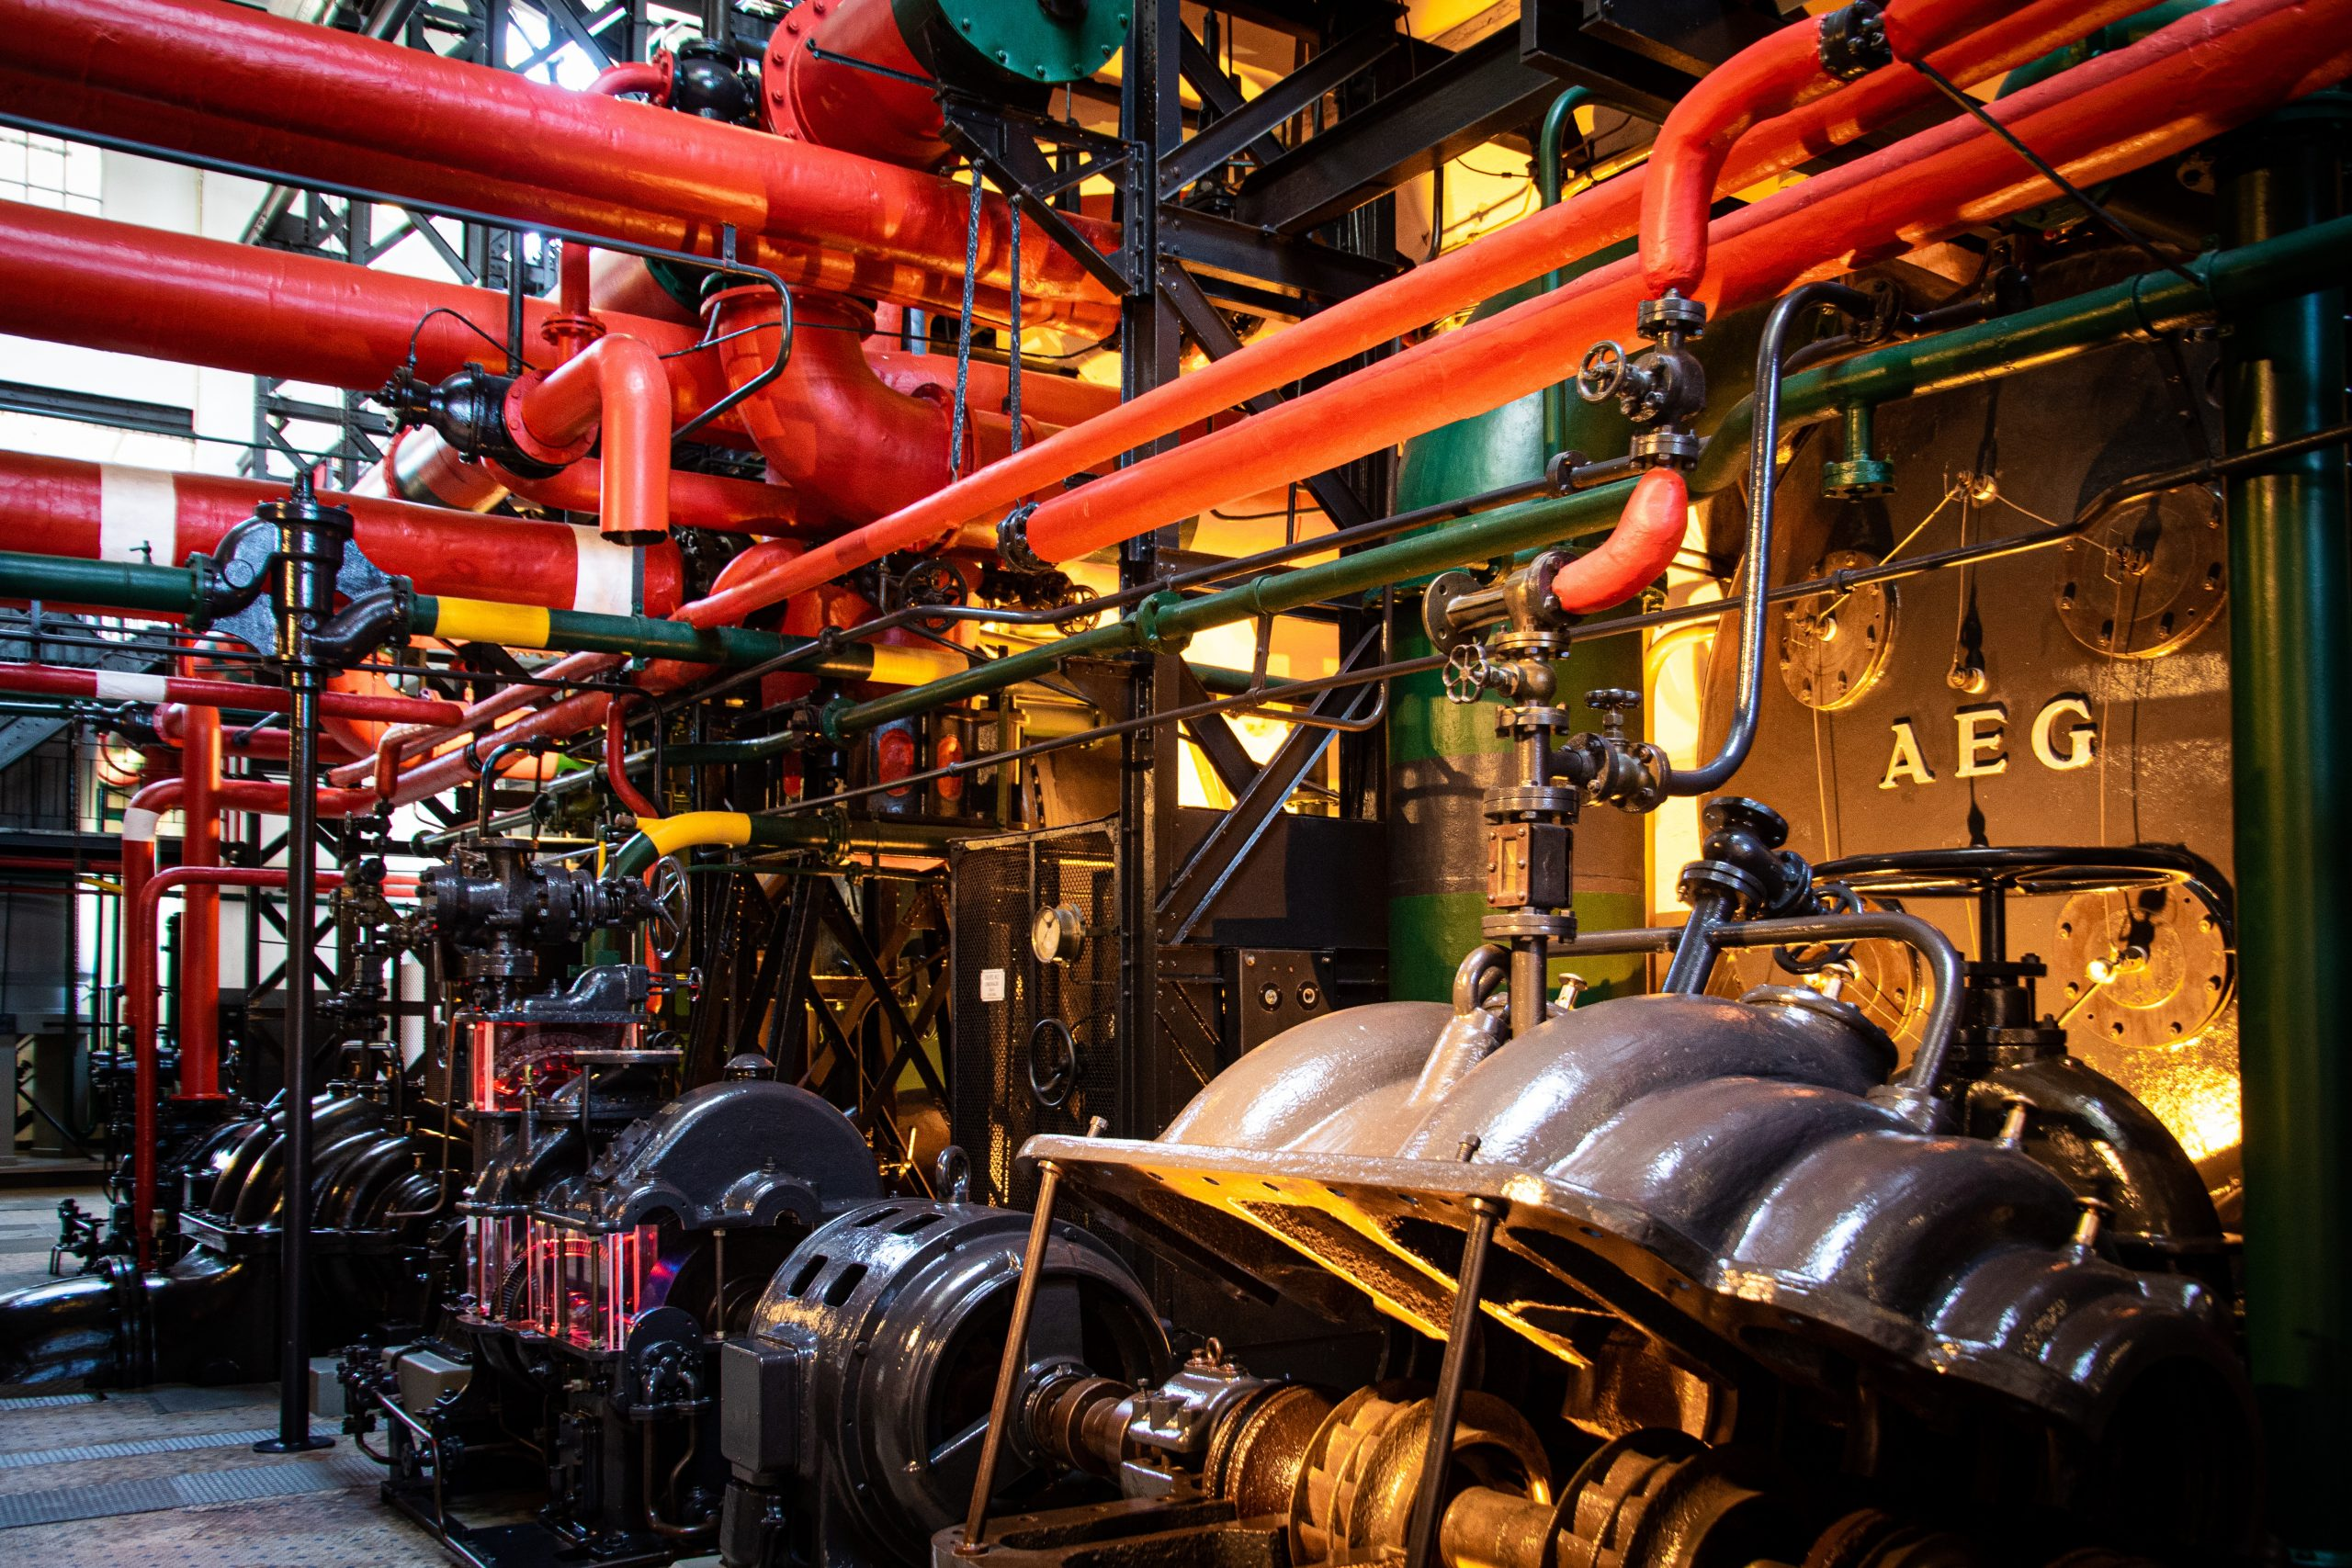 gray-and-red-industrial-machine-2569839